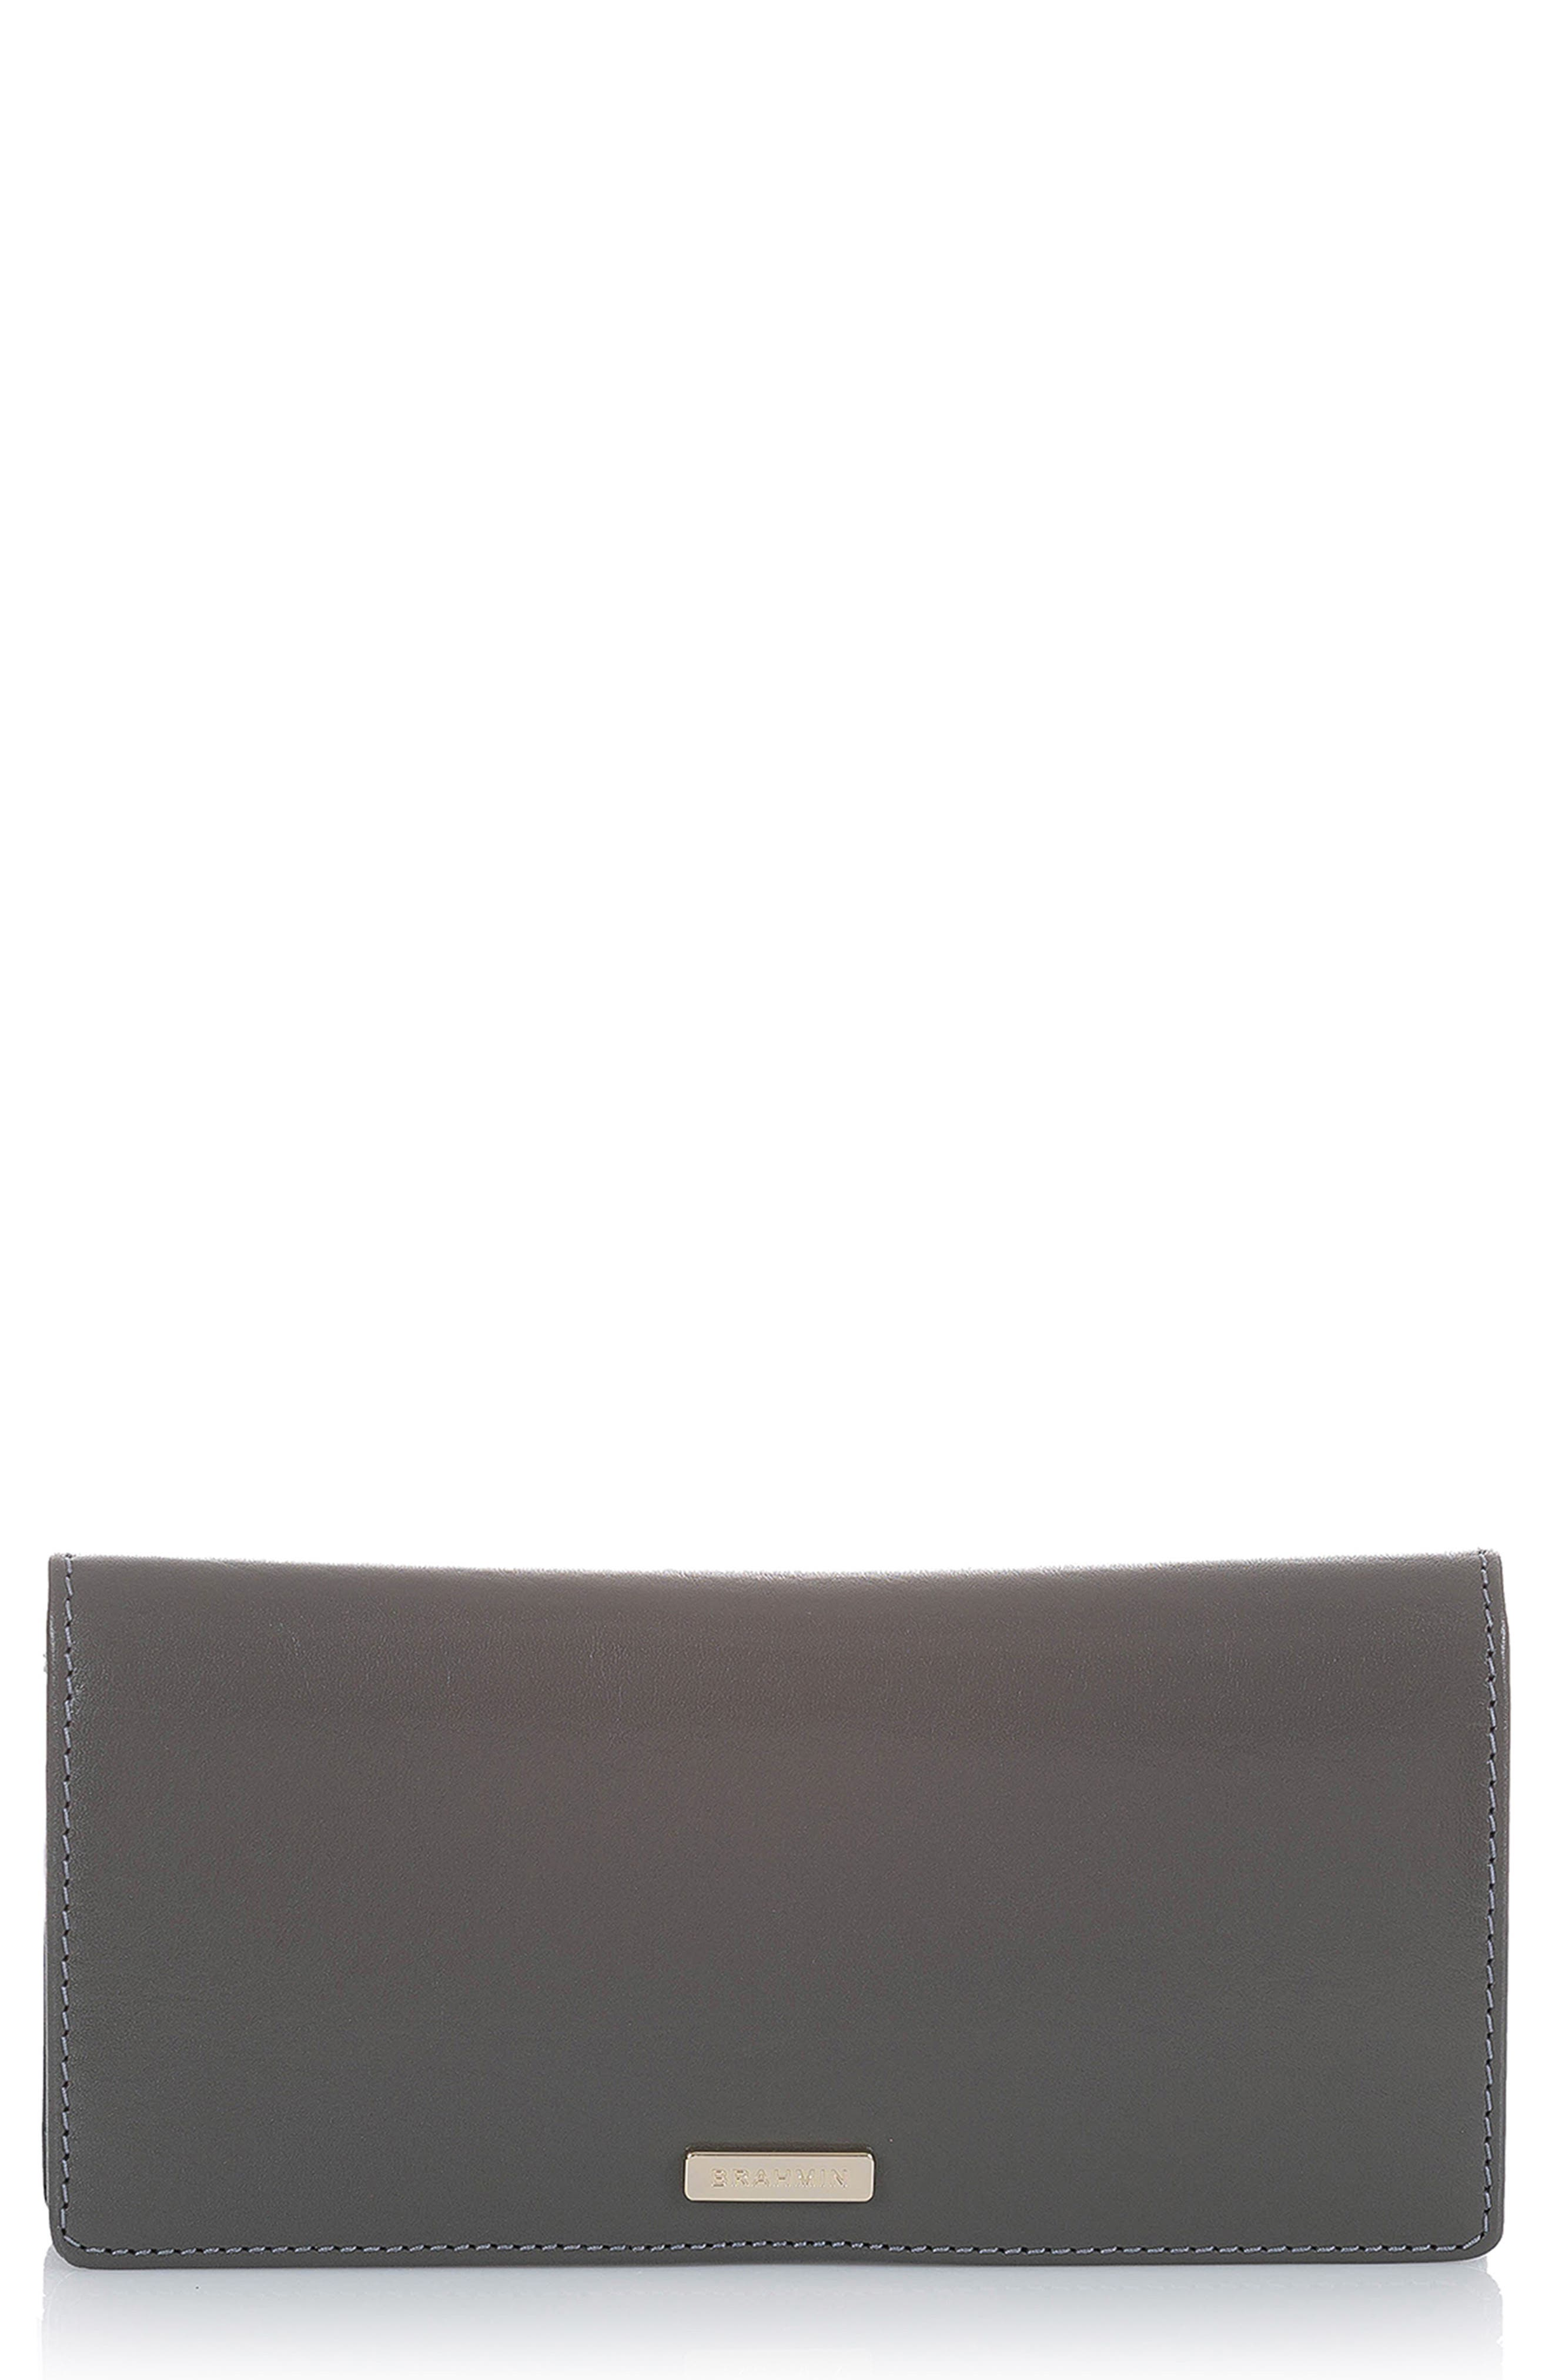 Ady Leather Wallet,                         Main,                         color, CHARCOAL